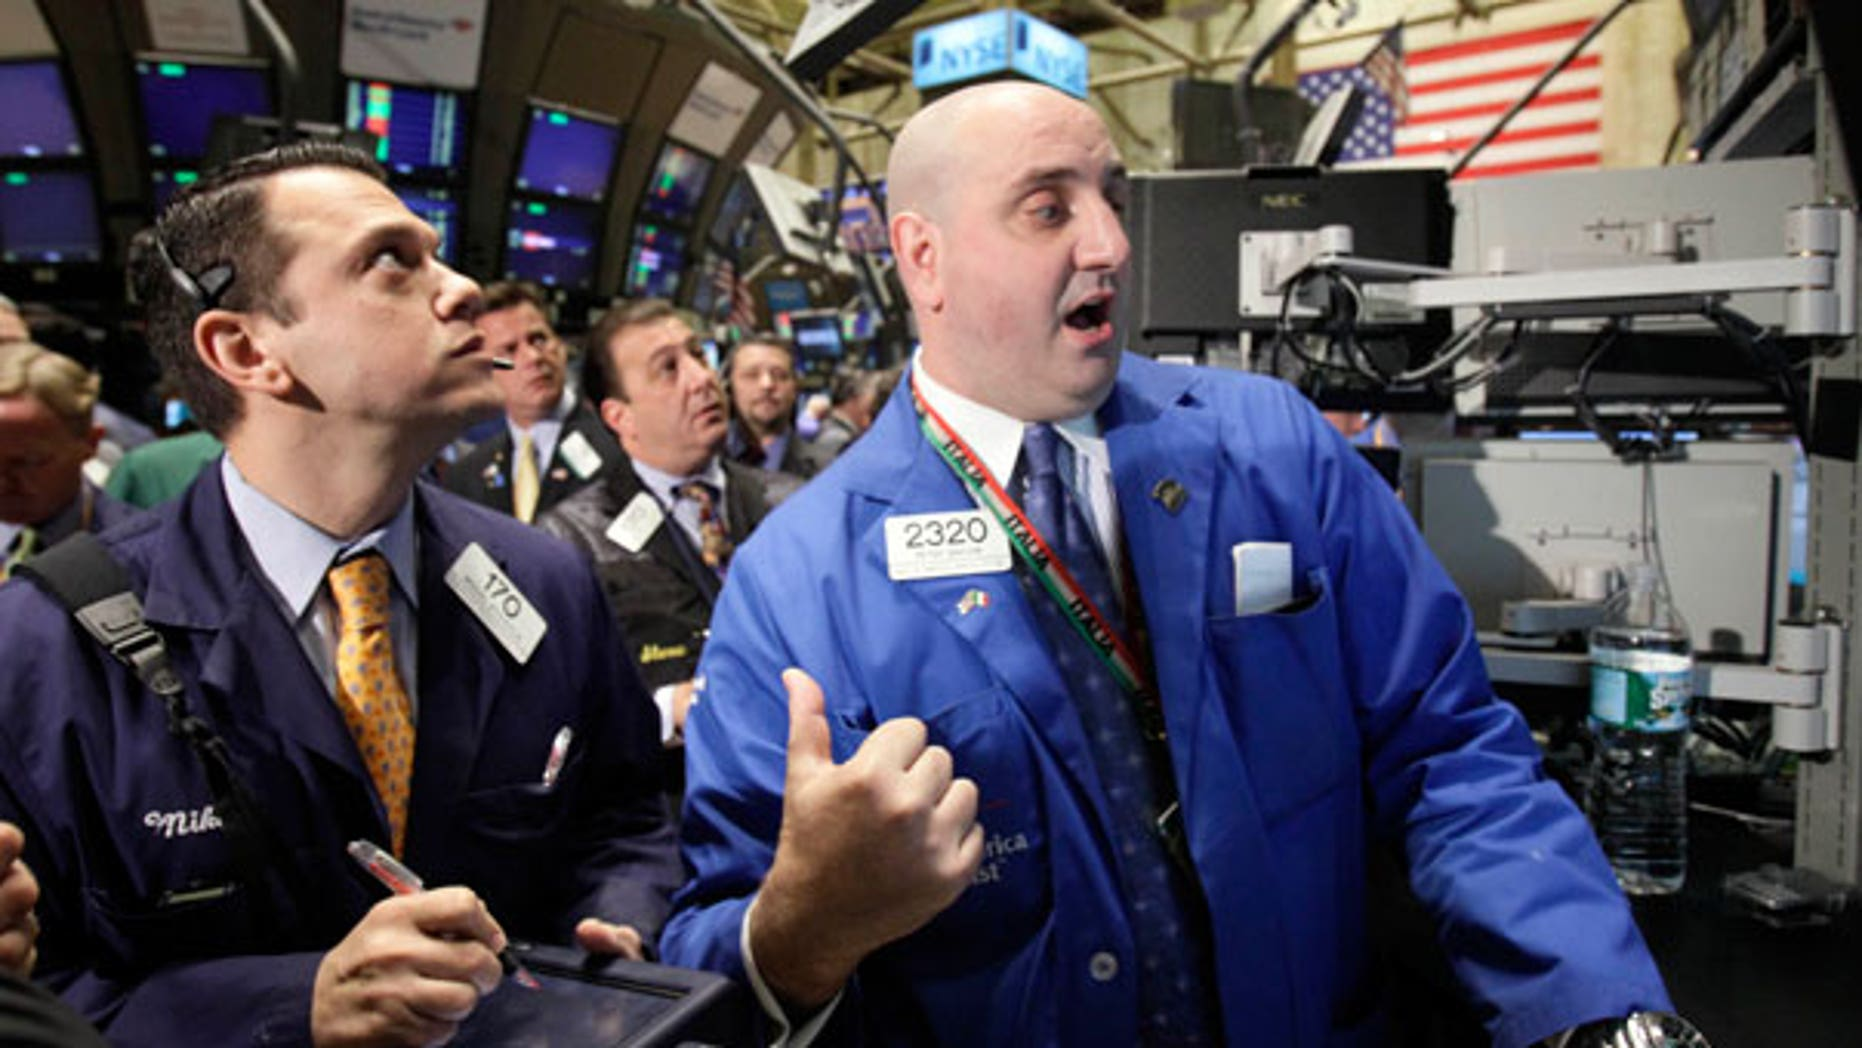 April 19: A specialist directs trades in shares of Goldman Sachs on the floor of the New York Stock Exchange.